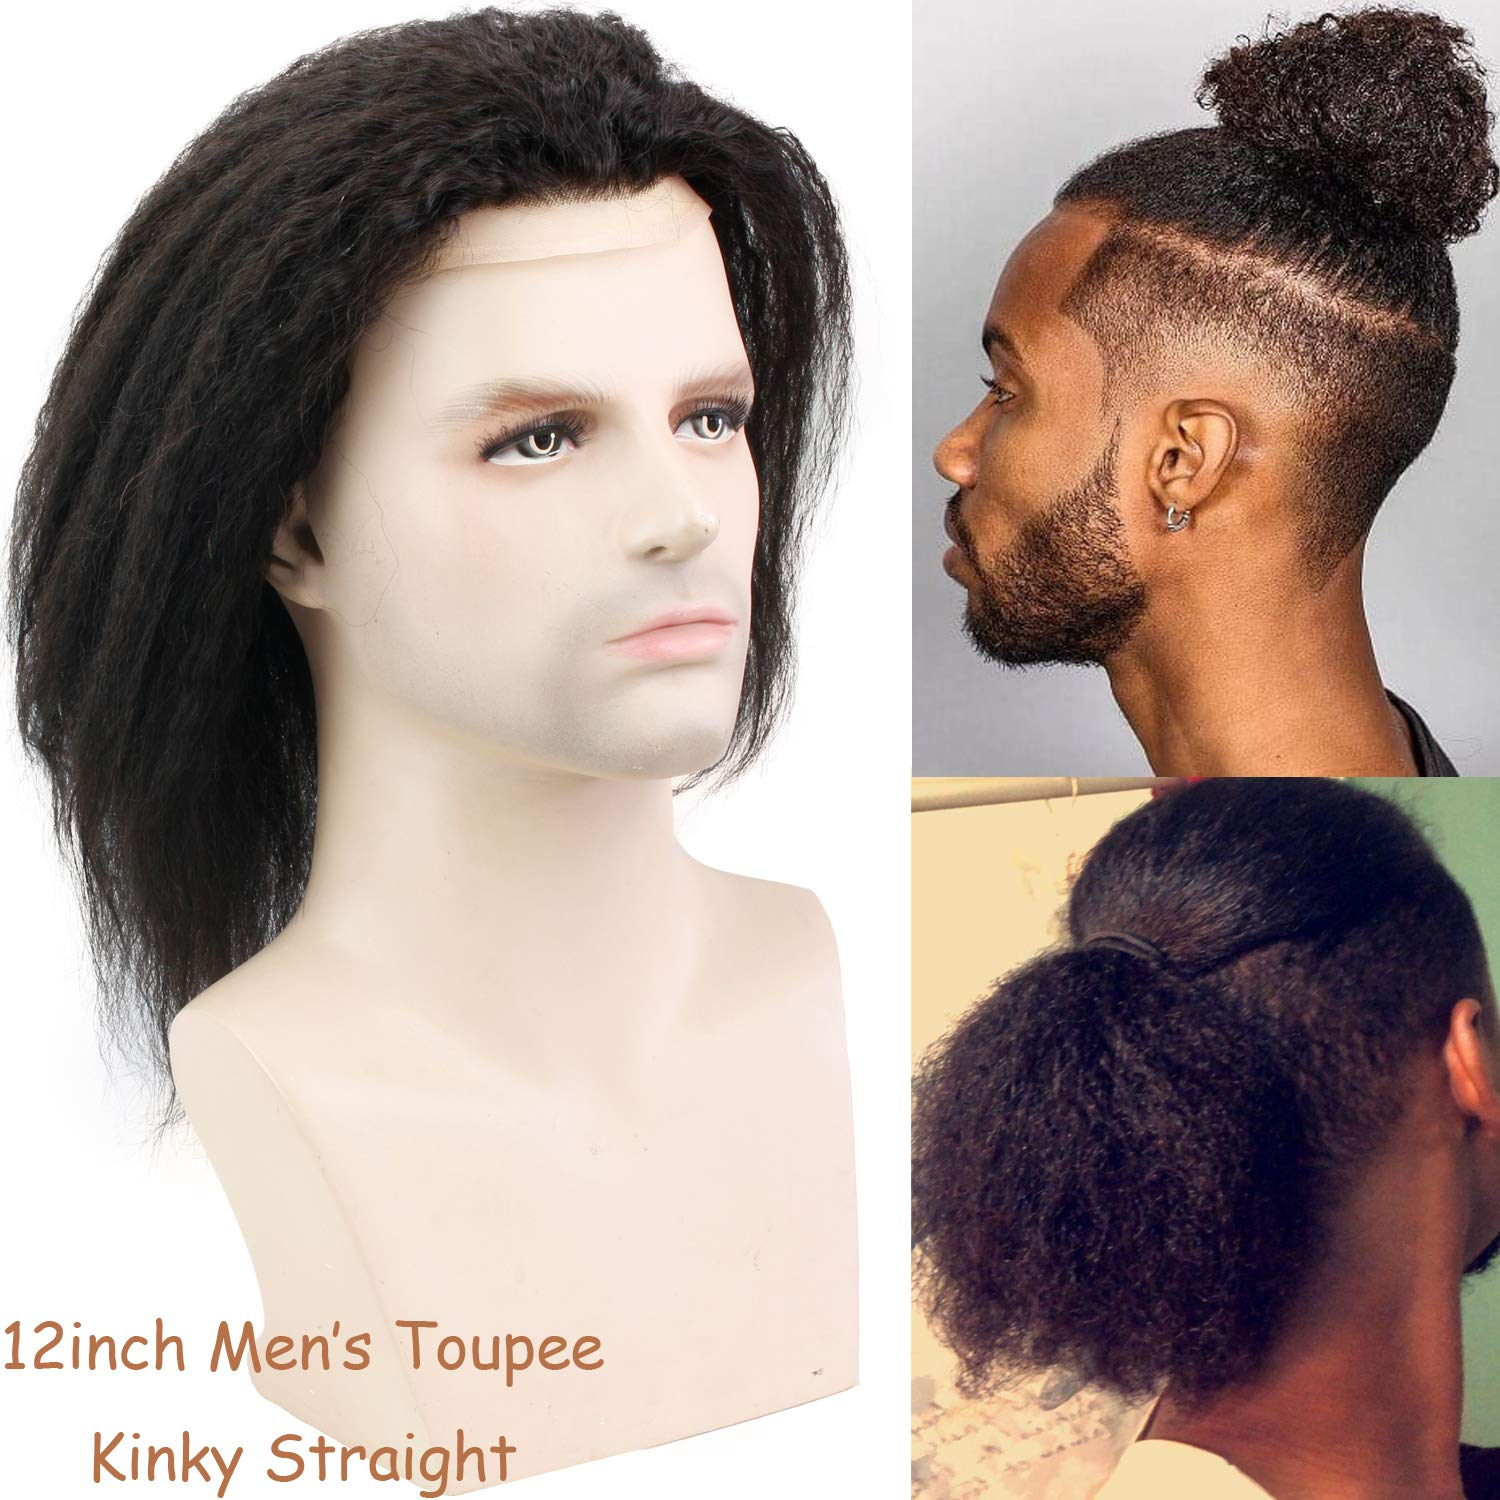 """12"""" Long Kinky Straight Human Hair Replacement for Men Stock Toupee Mono Lace and PU Around with Swiss Lace Front 10x8""""Base size"""